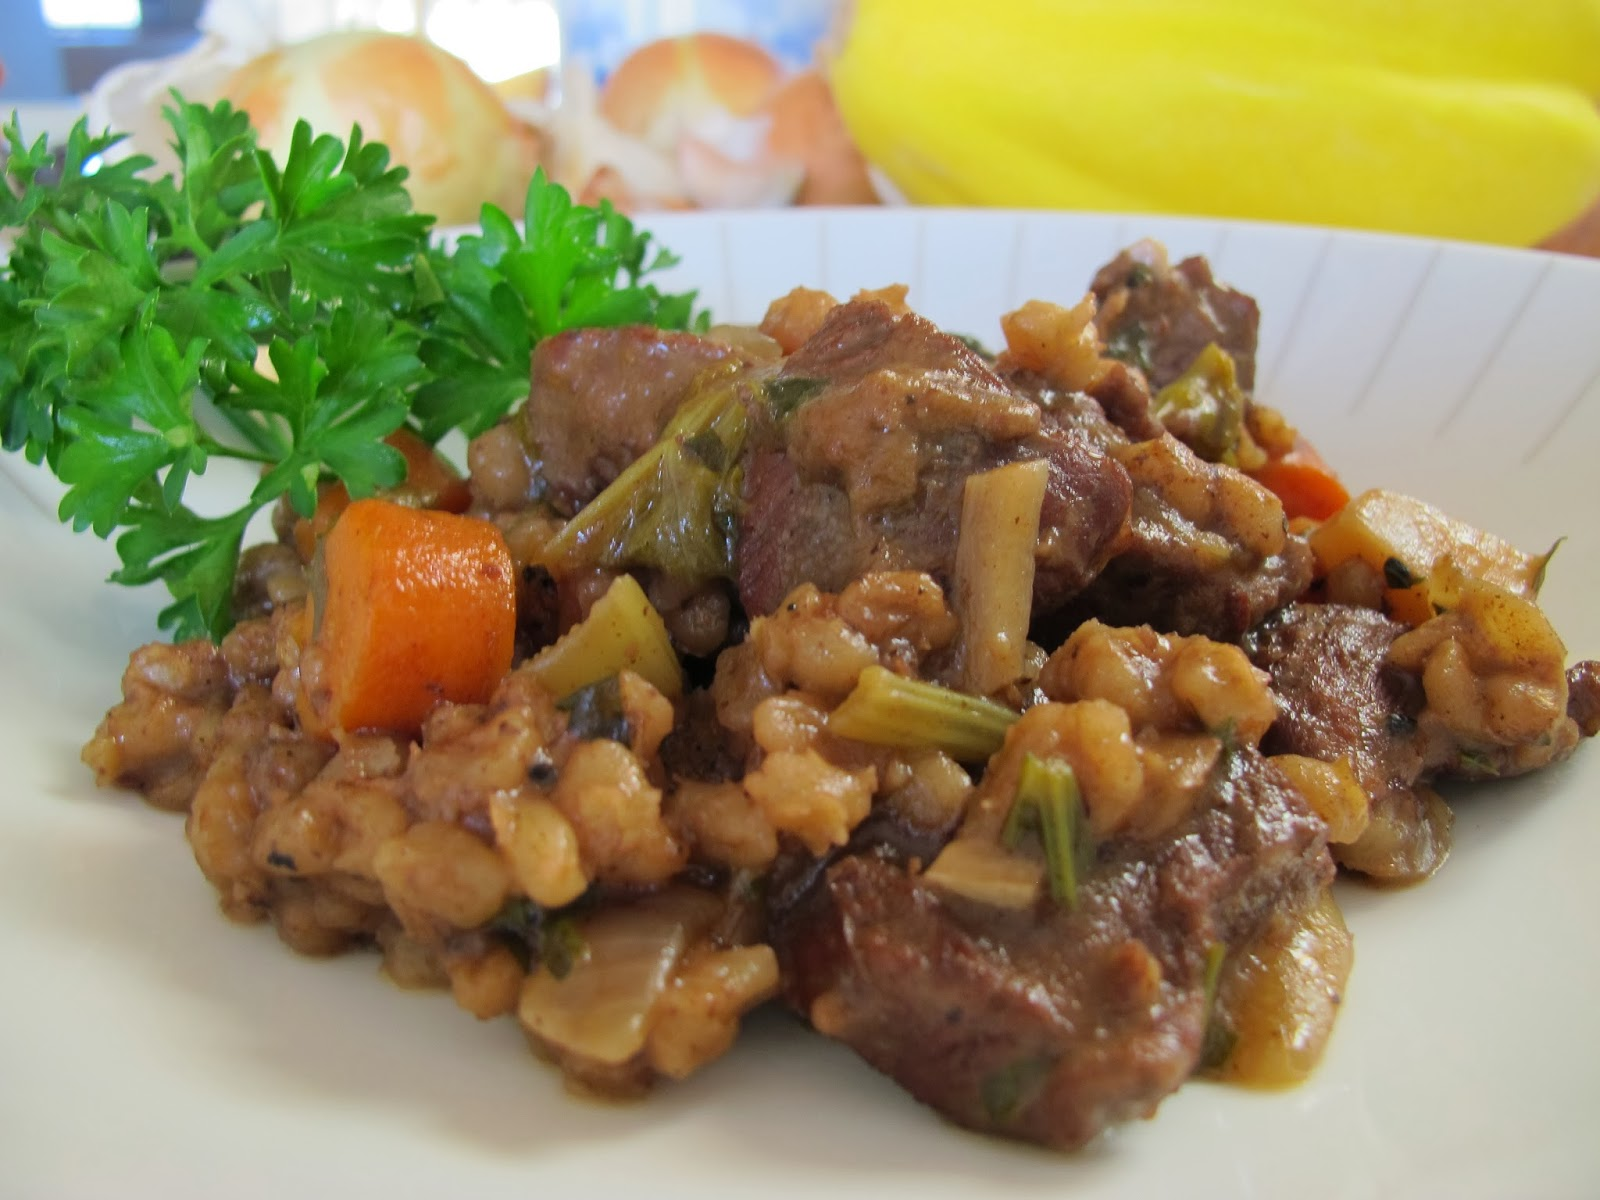 MORE TIME AT THE TABLE: Lamb and Barley Stew with Root Vegetables